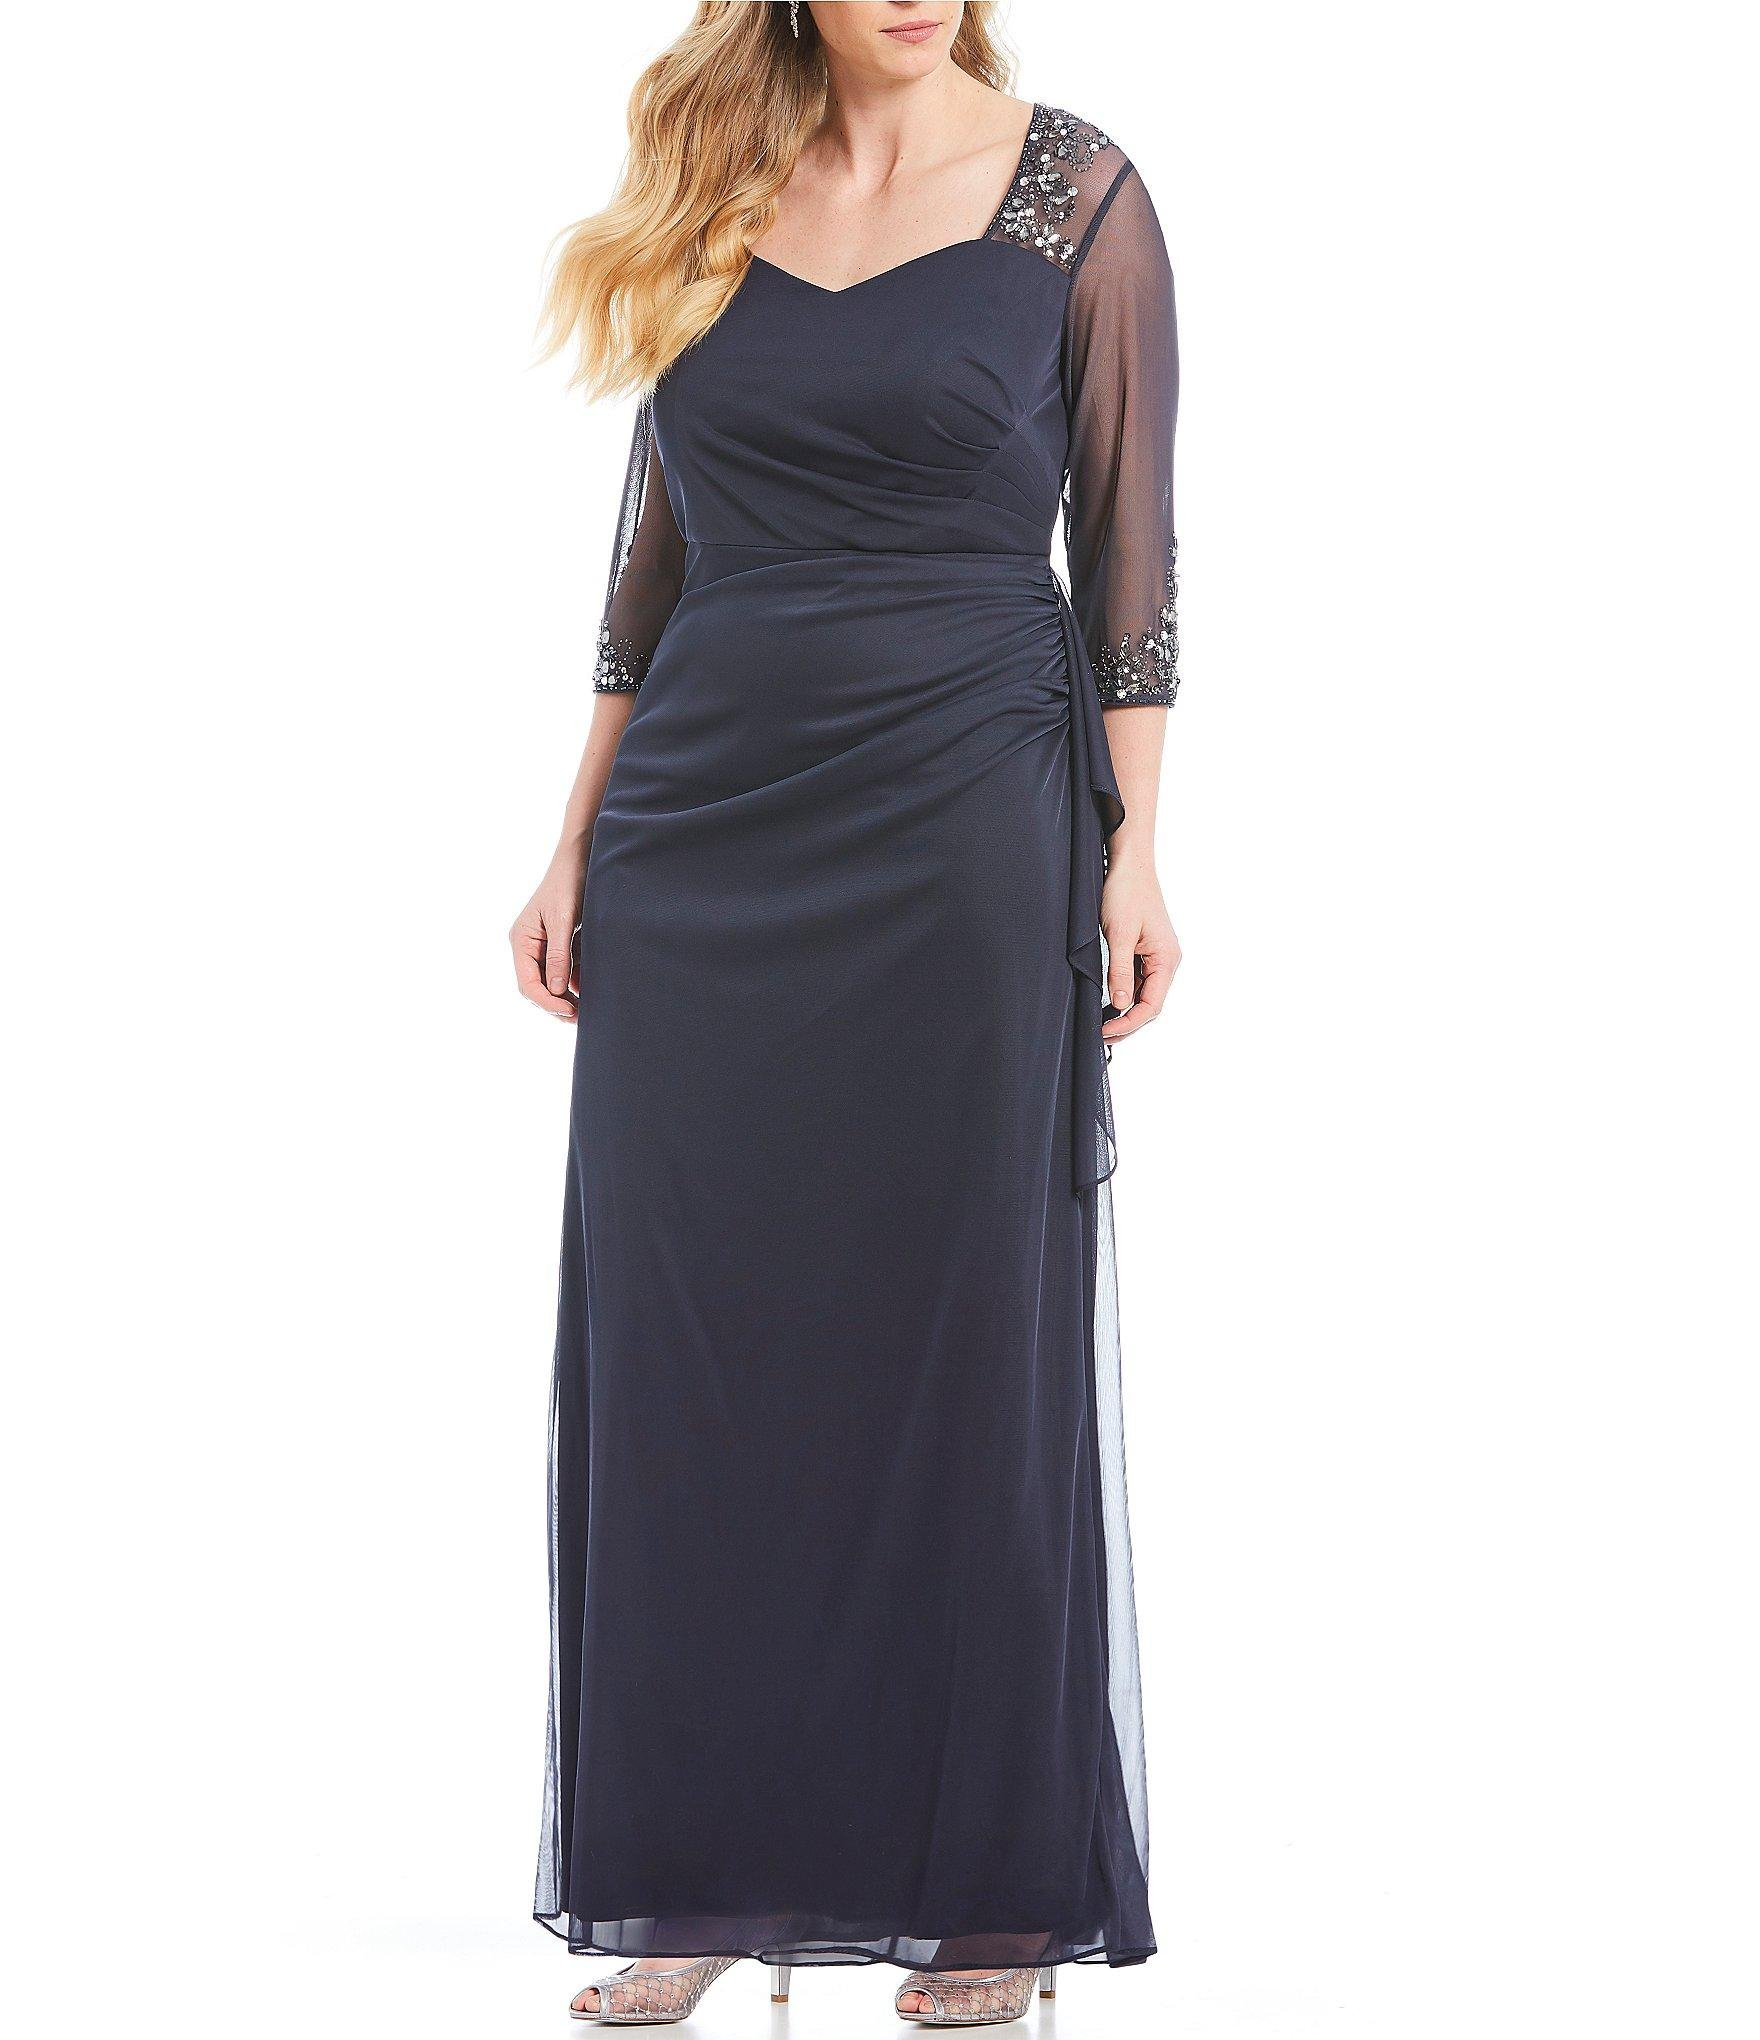 9571f677e0a Alex Evenings. Women s Plus Size Illusion Mesh Sweetheart Neck 3 4 Sleeve  Gown